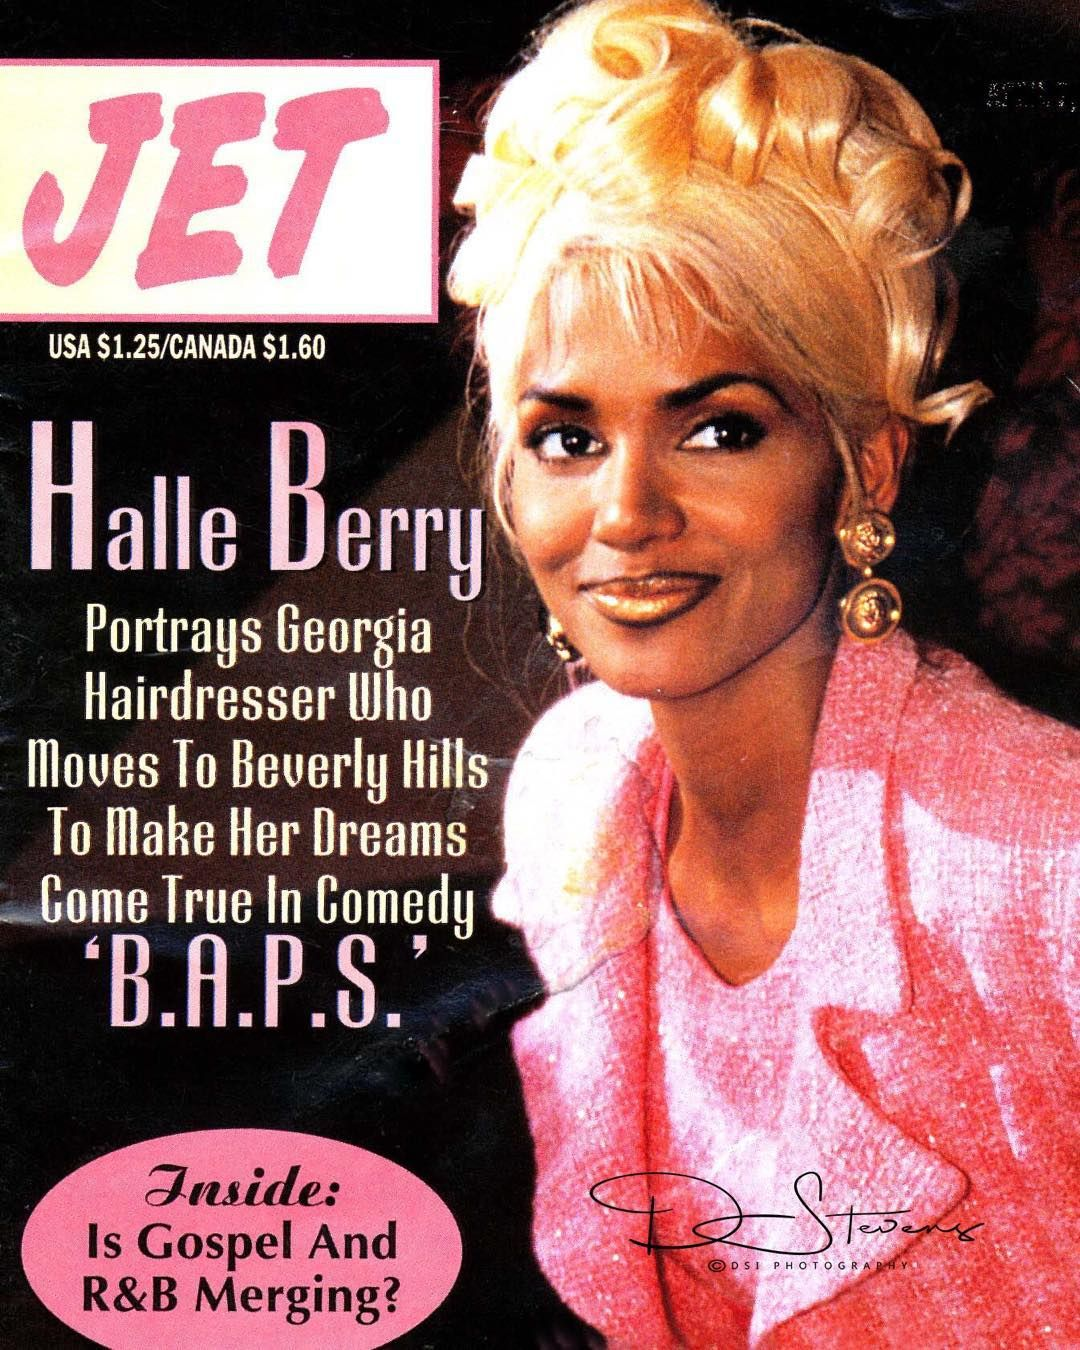 Halle Berry on the cover of Jet Magazine